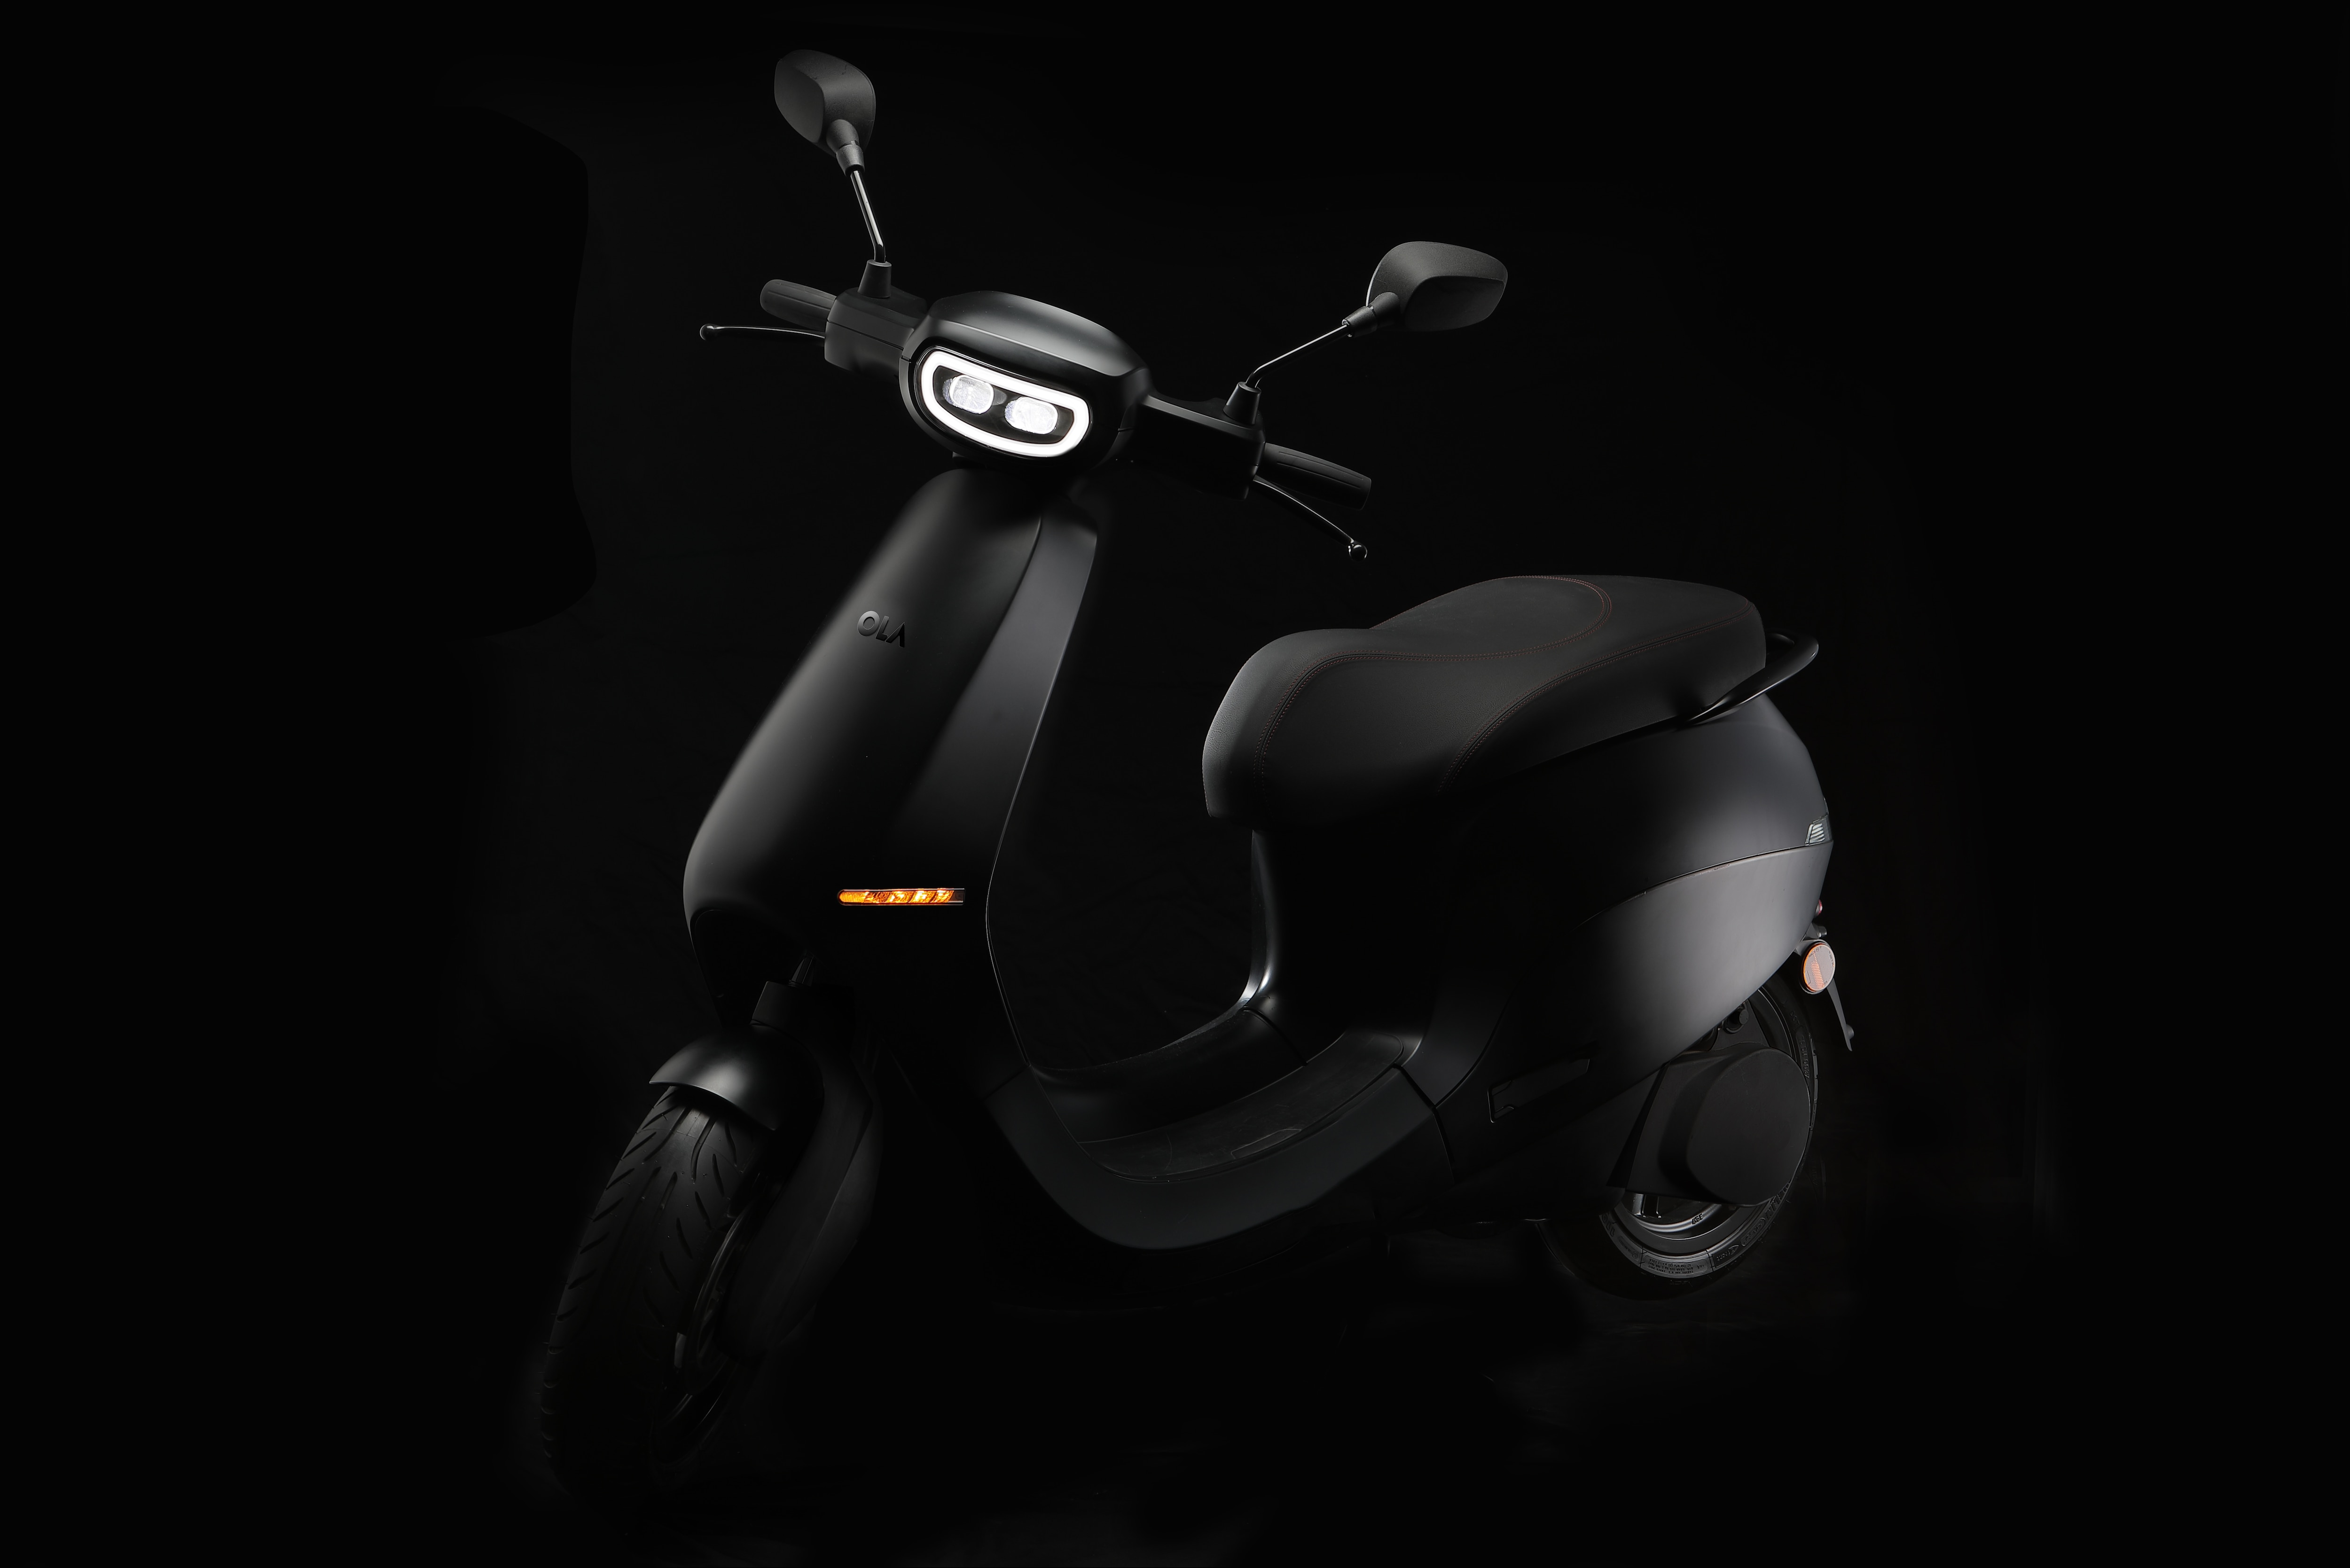 Ola Electric Scooter: What To Expect - Pricing, Rivals And More